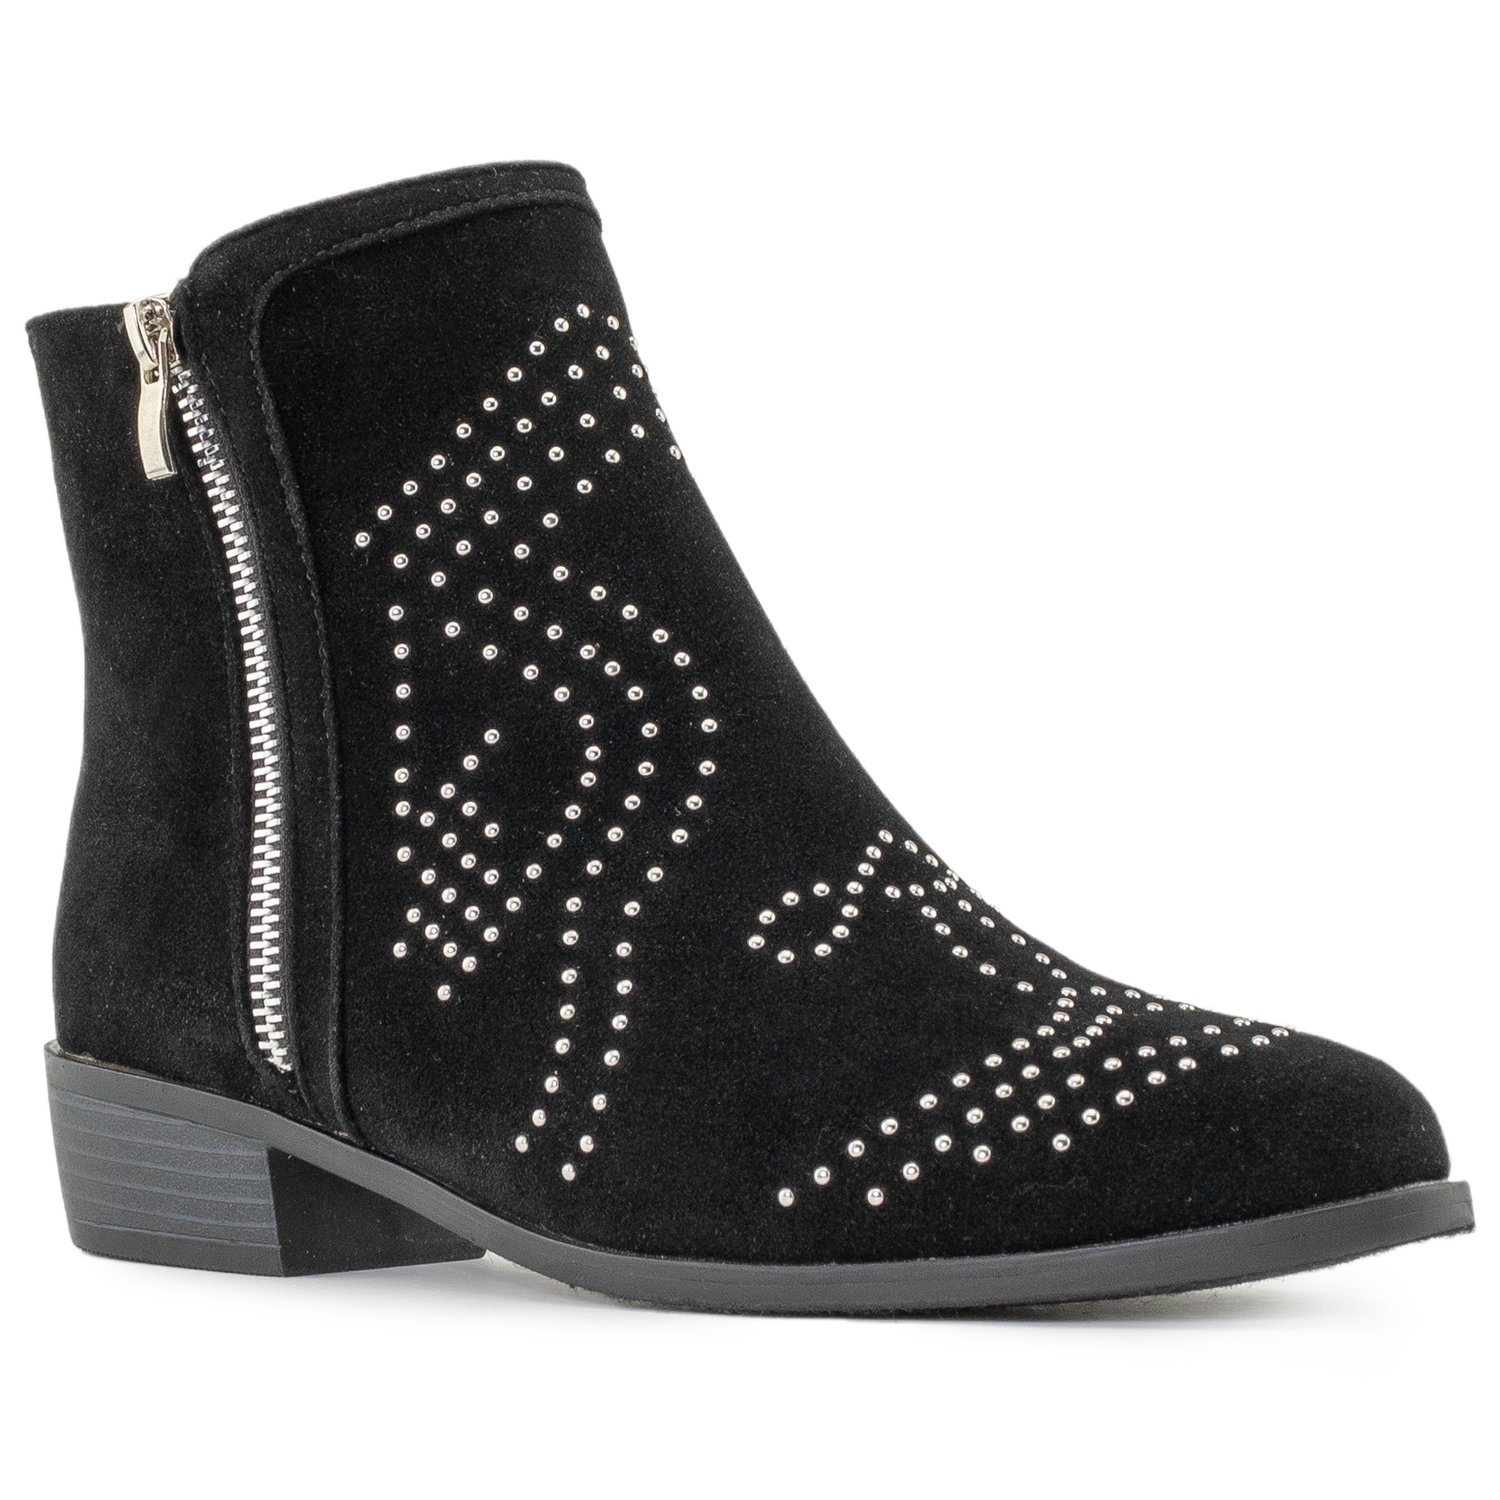 RF ROOM OF FASHION Women's Western Style Studded Almond Toe Stacked Heel Side Zipper Ankle Boots Black SU (8.5)